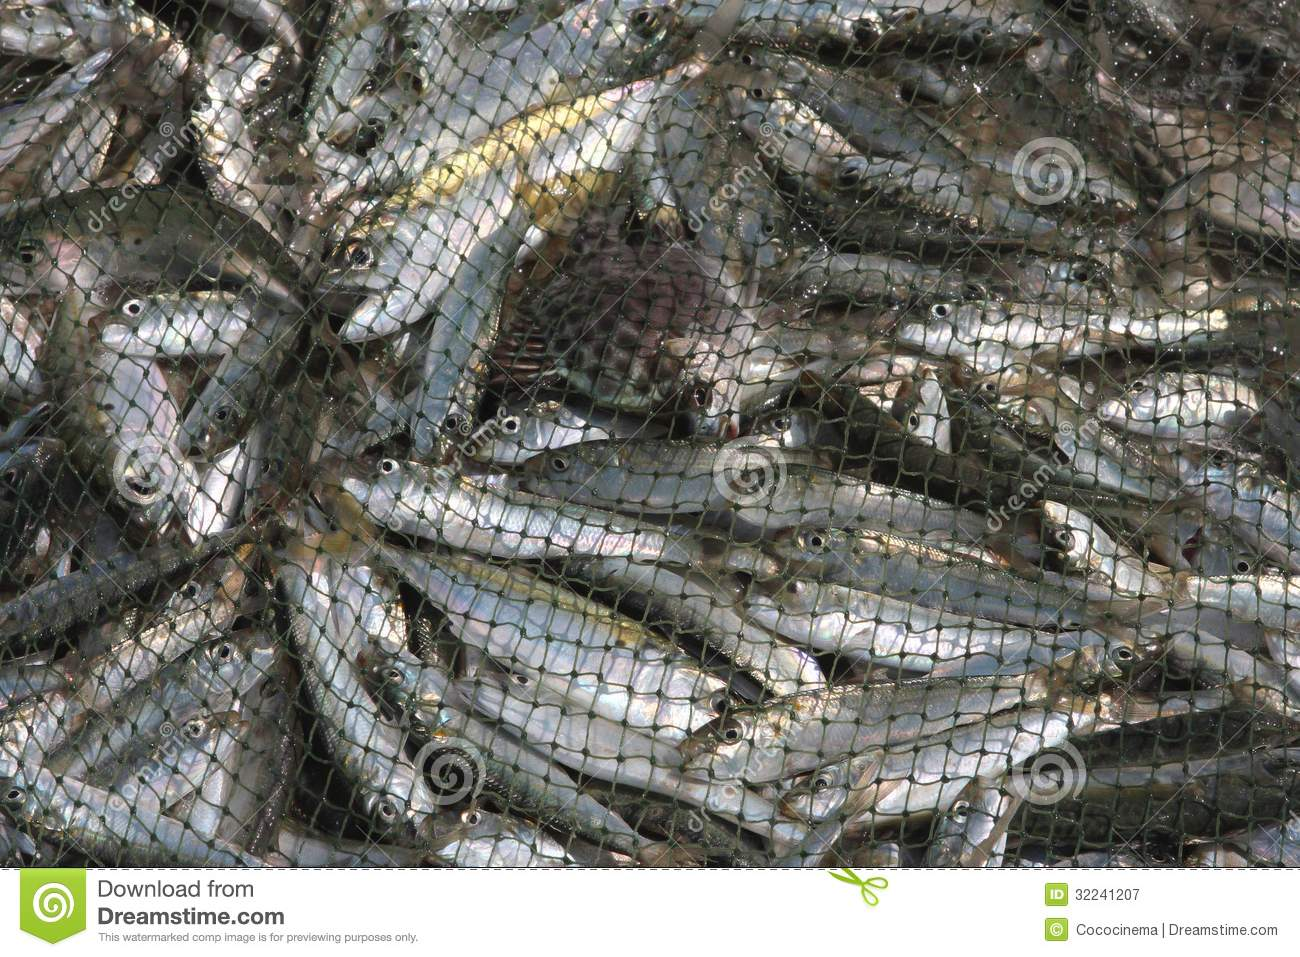 Fishing live fish caught in the net royalty free stock for Sjfc fish r net